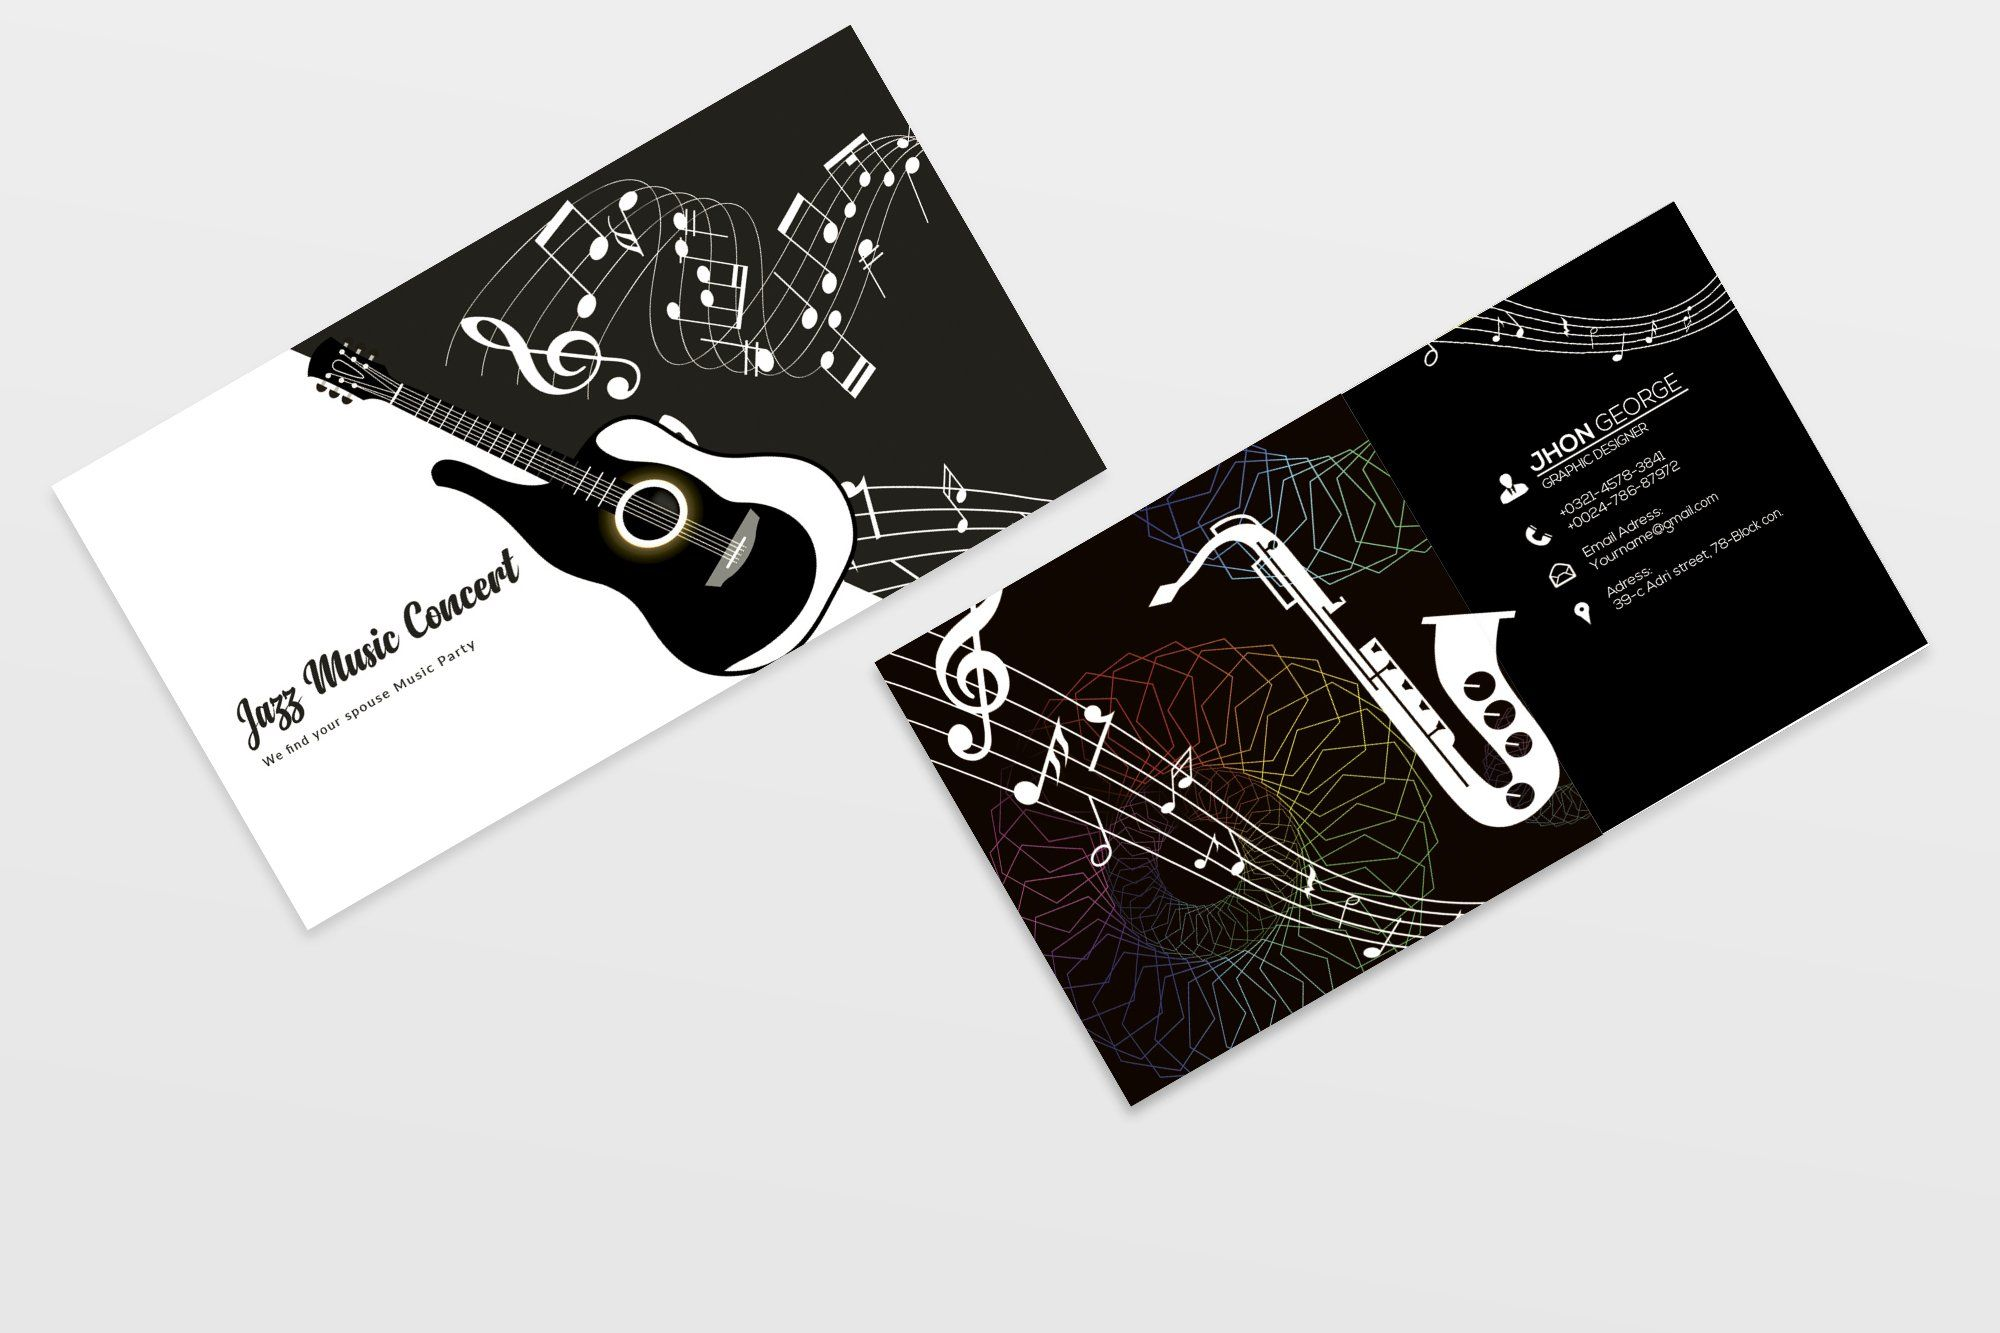 Jazz Music Business Card Template 07 In 2021 Music Business Cards Music Business Business Cards